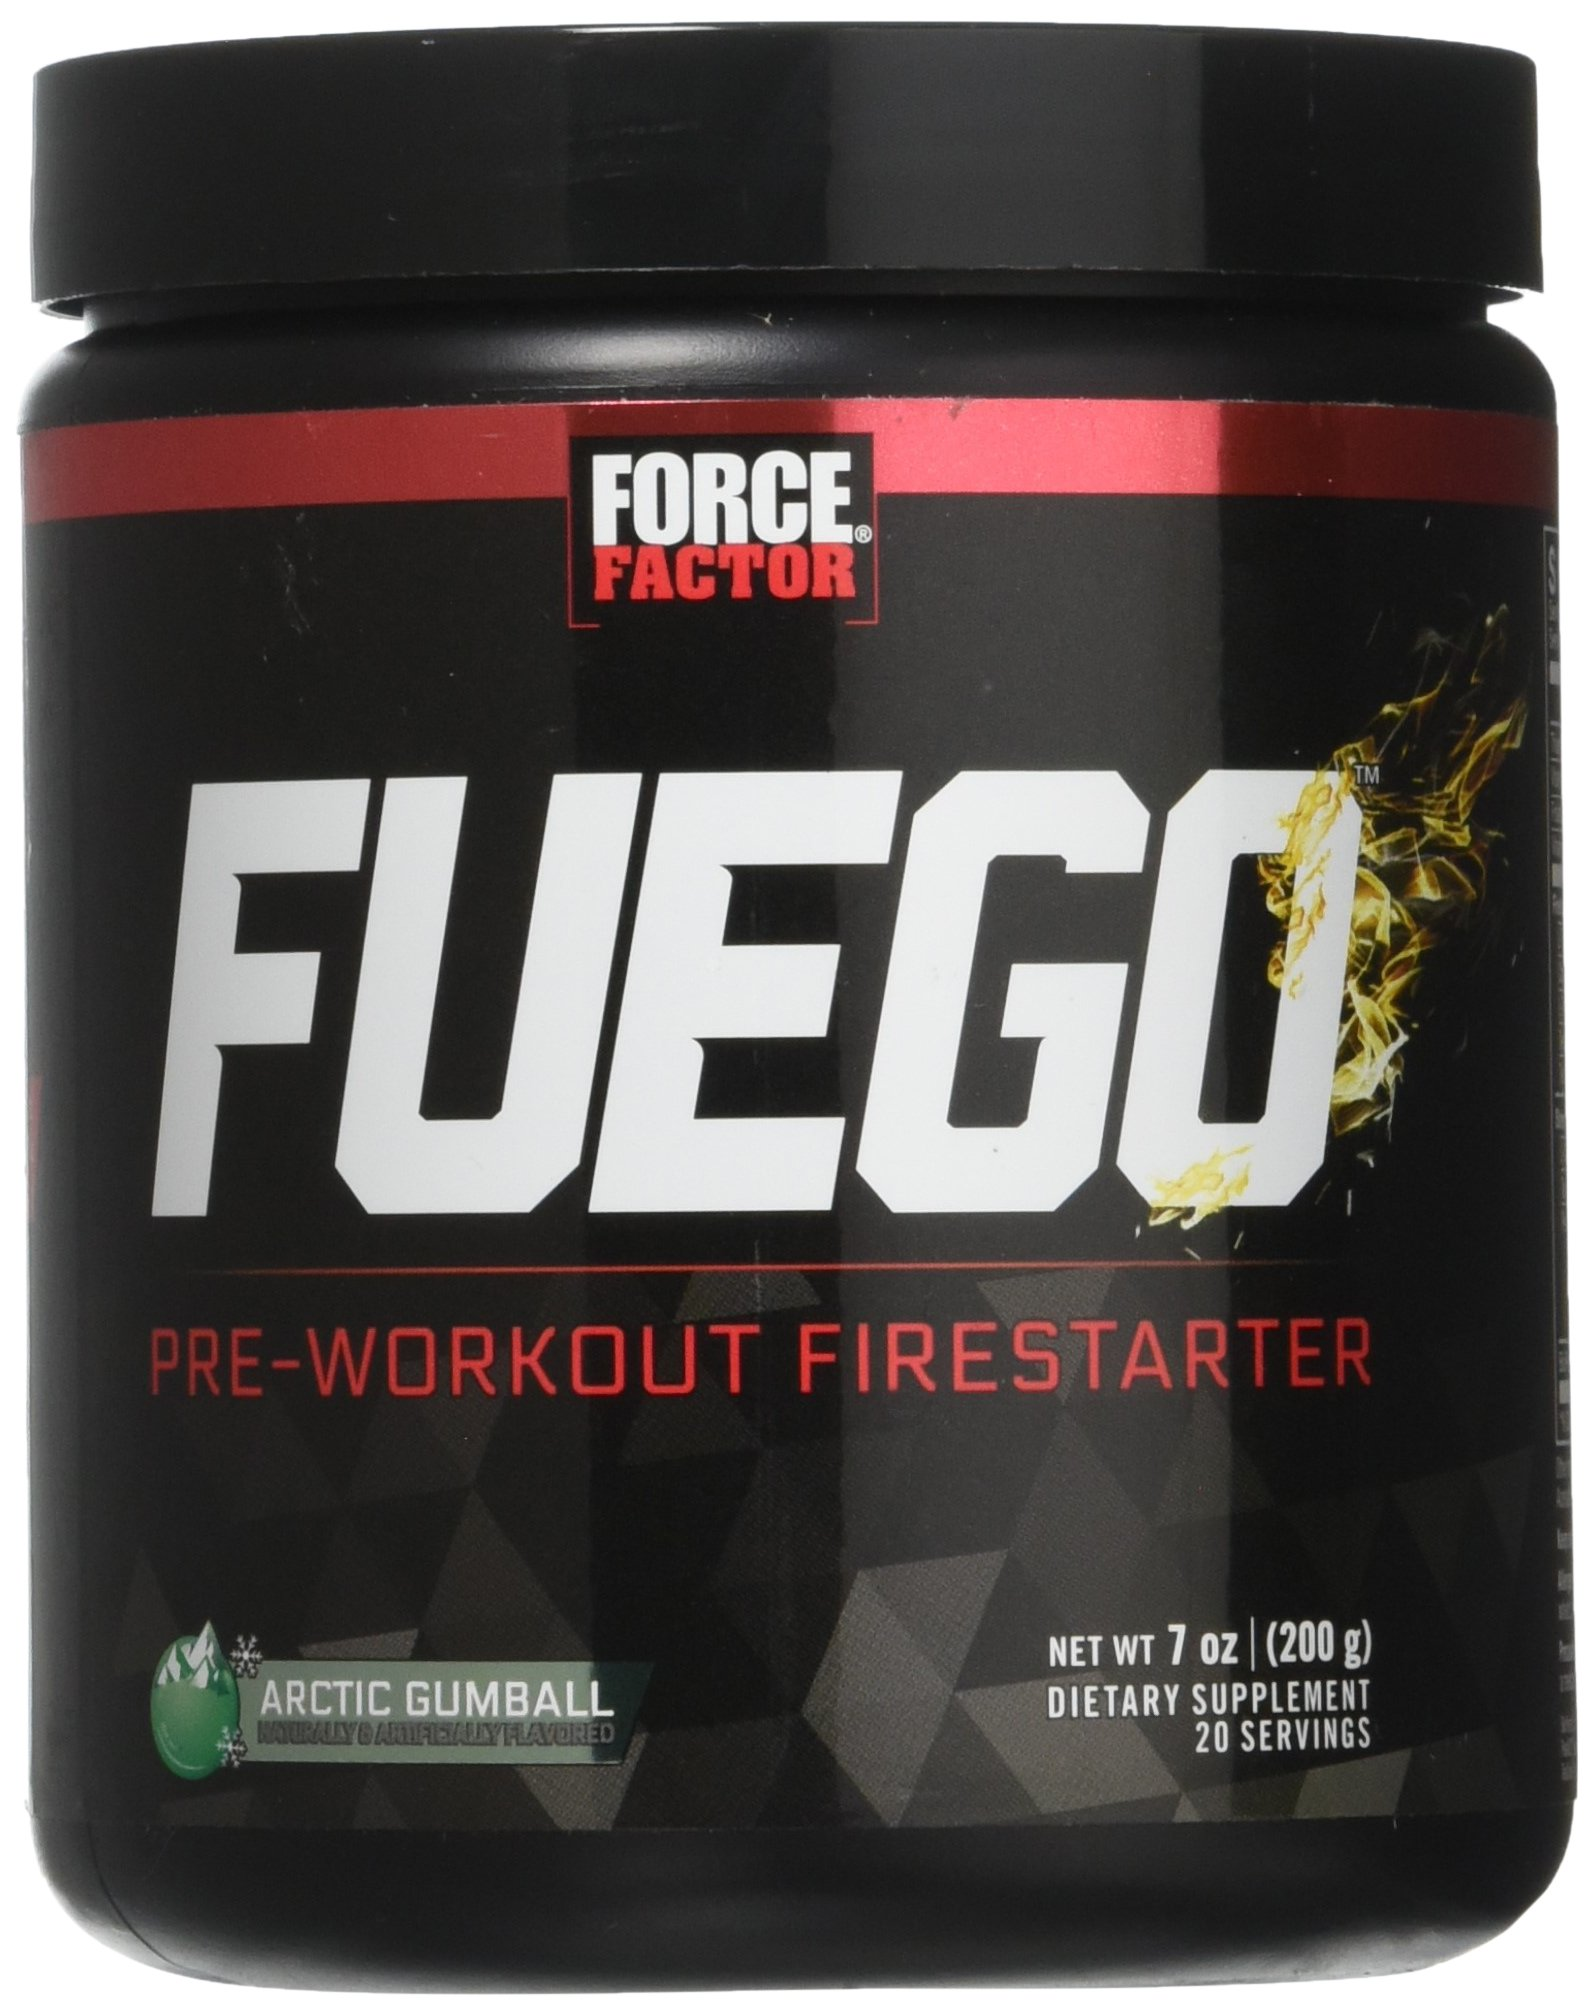 Amazon.com: Force Factor Fuego Pre-Workout Firestarter for